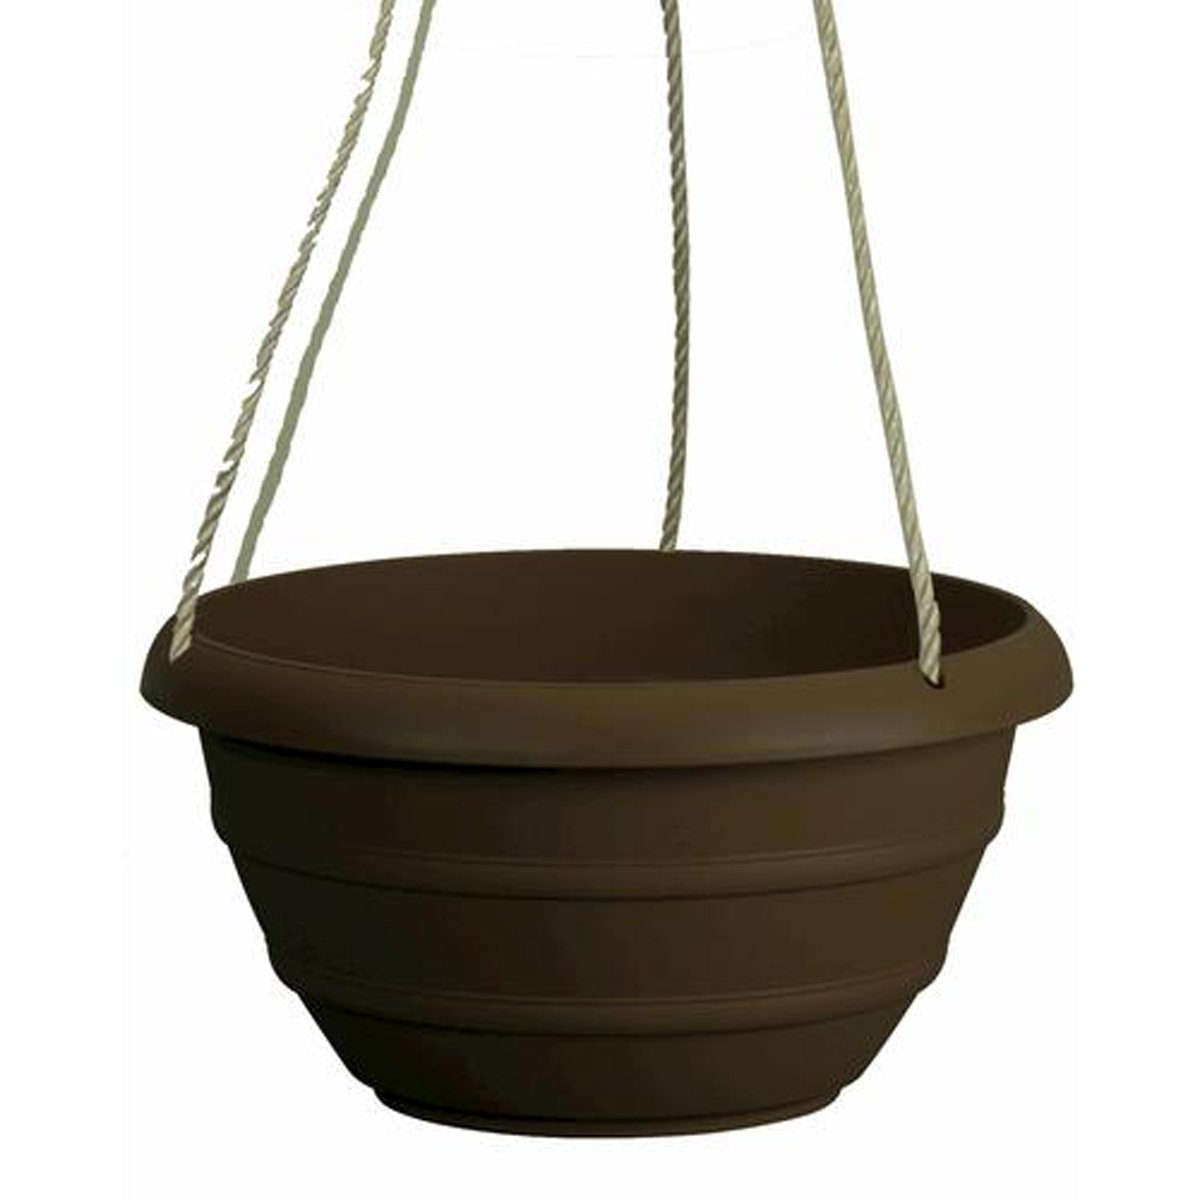 Marina Hanging Basket Resin Planter - Weather Proof Lightweight - 12'' H x 12'' W x 7'' D (Brown)